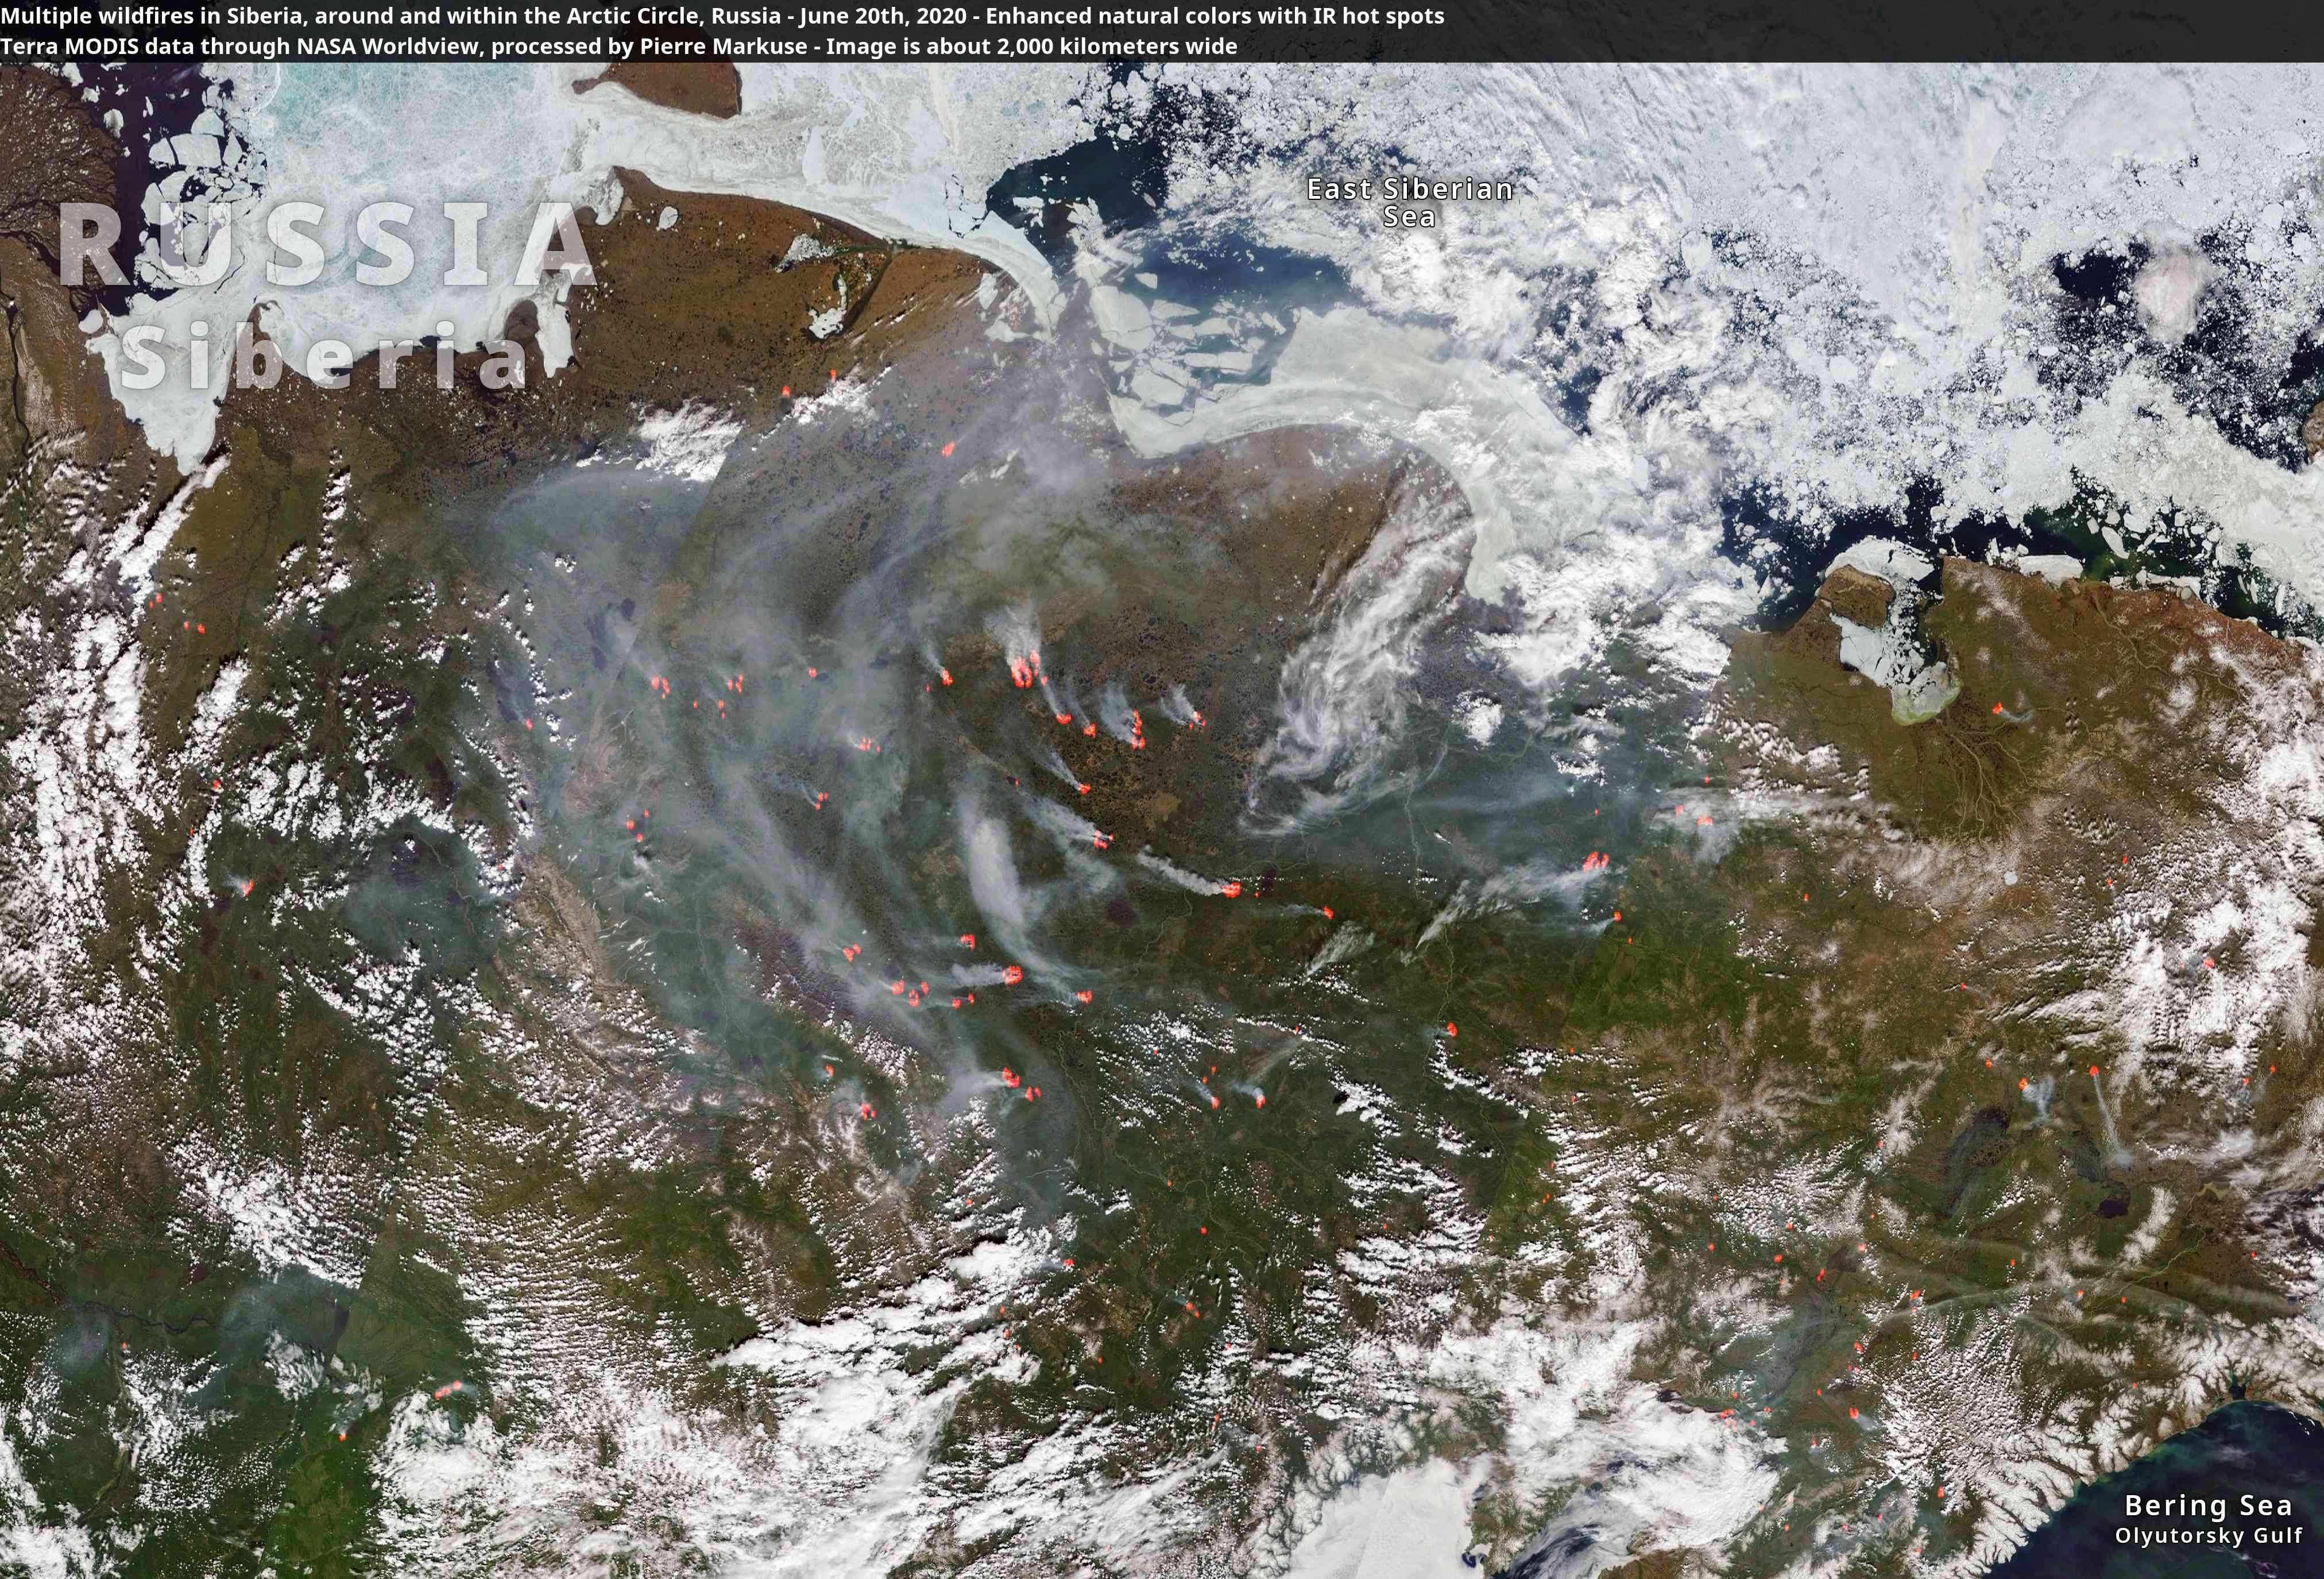 Multiple wildfires dot the Arctic Circle in Russia, June 2020